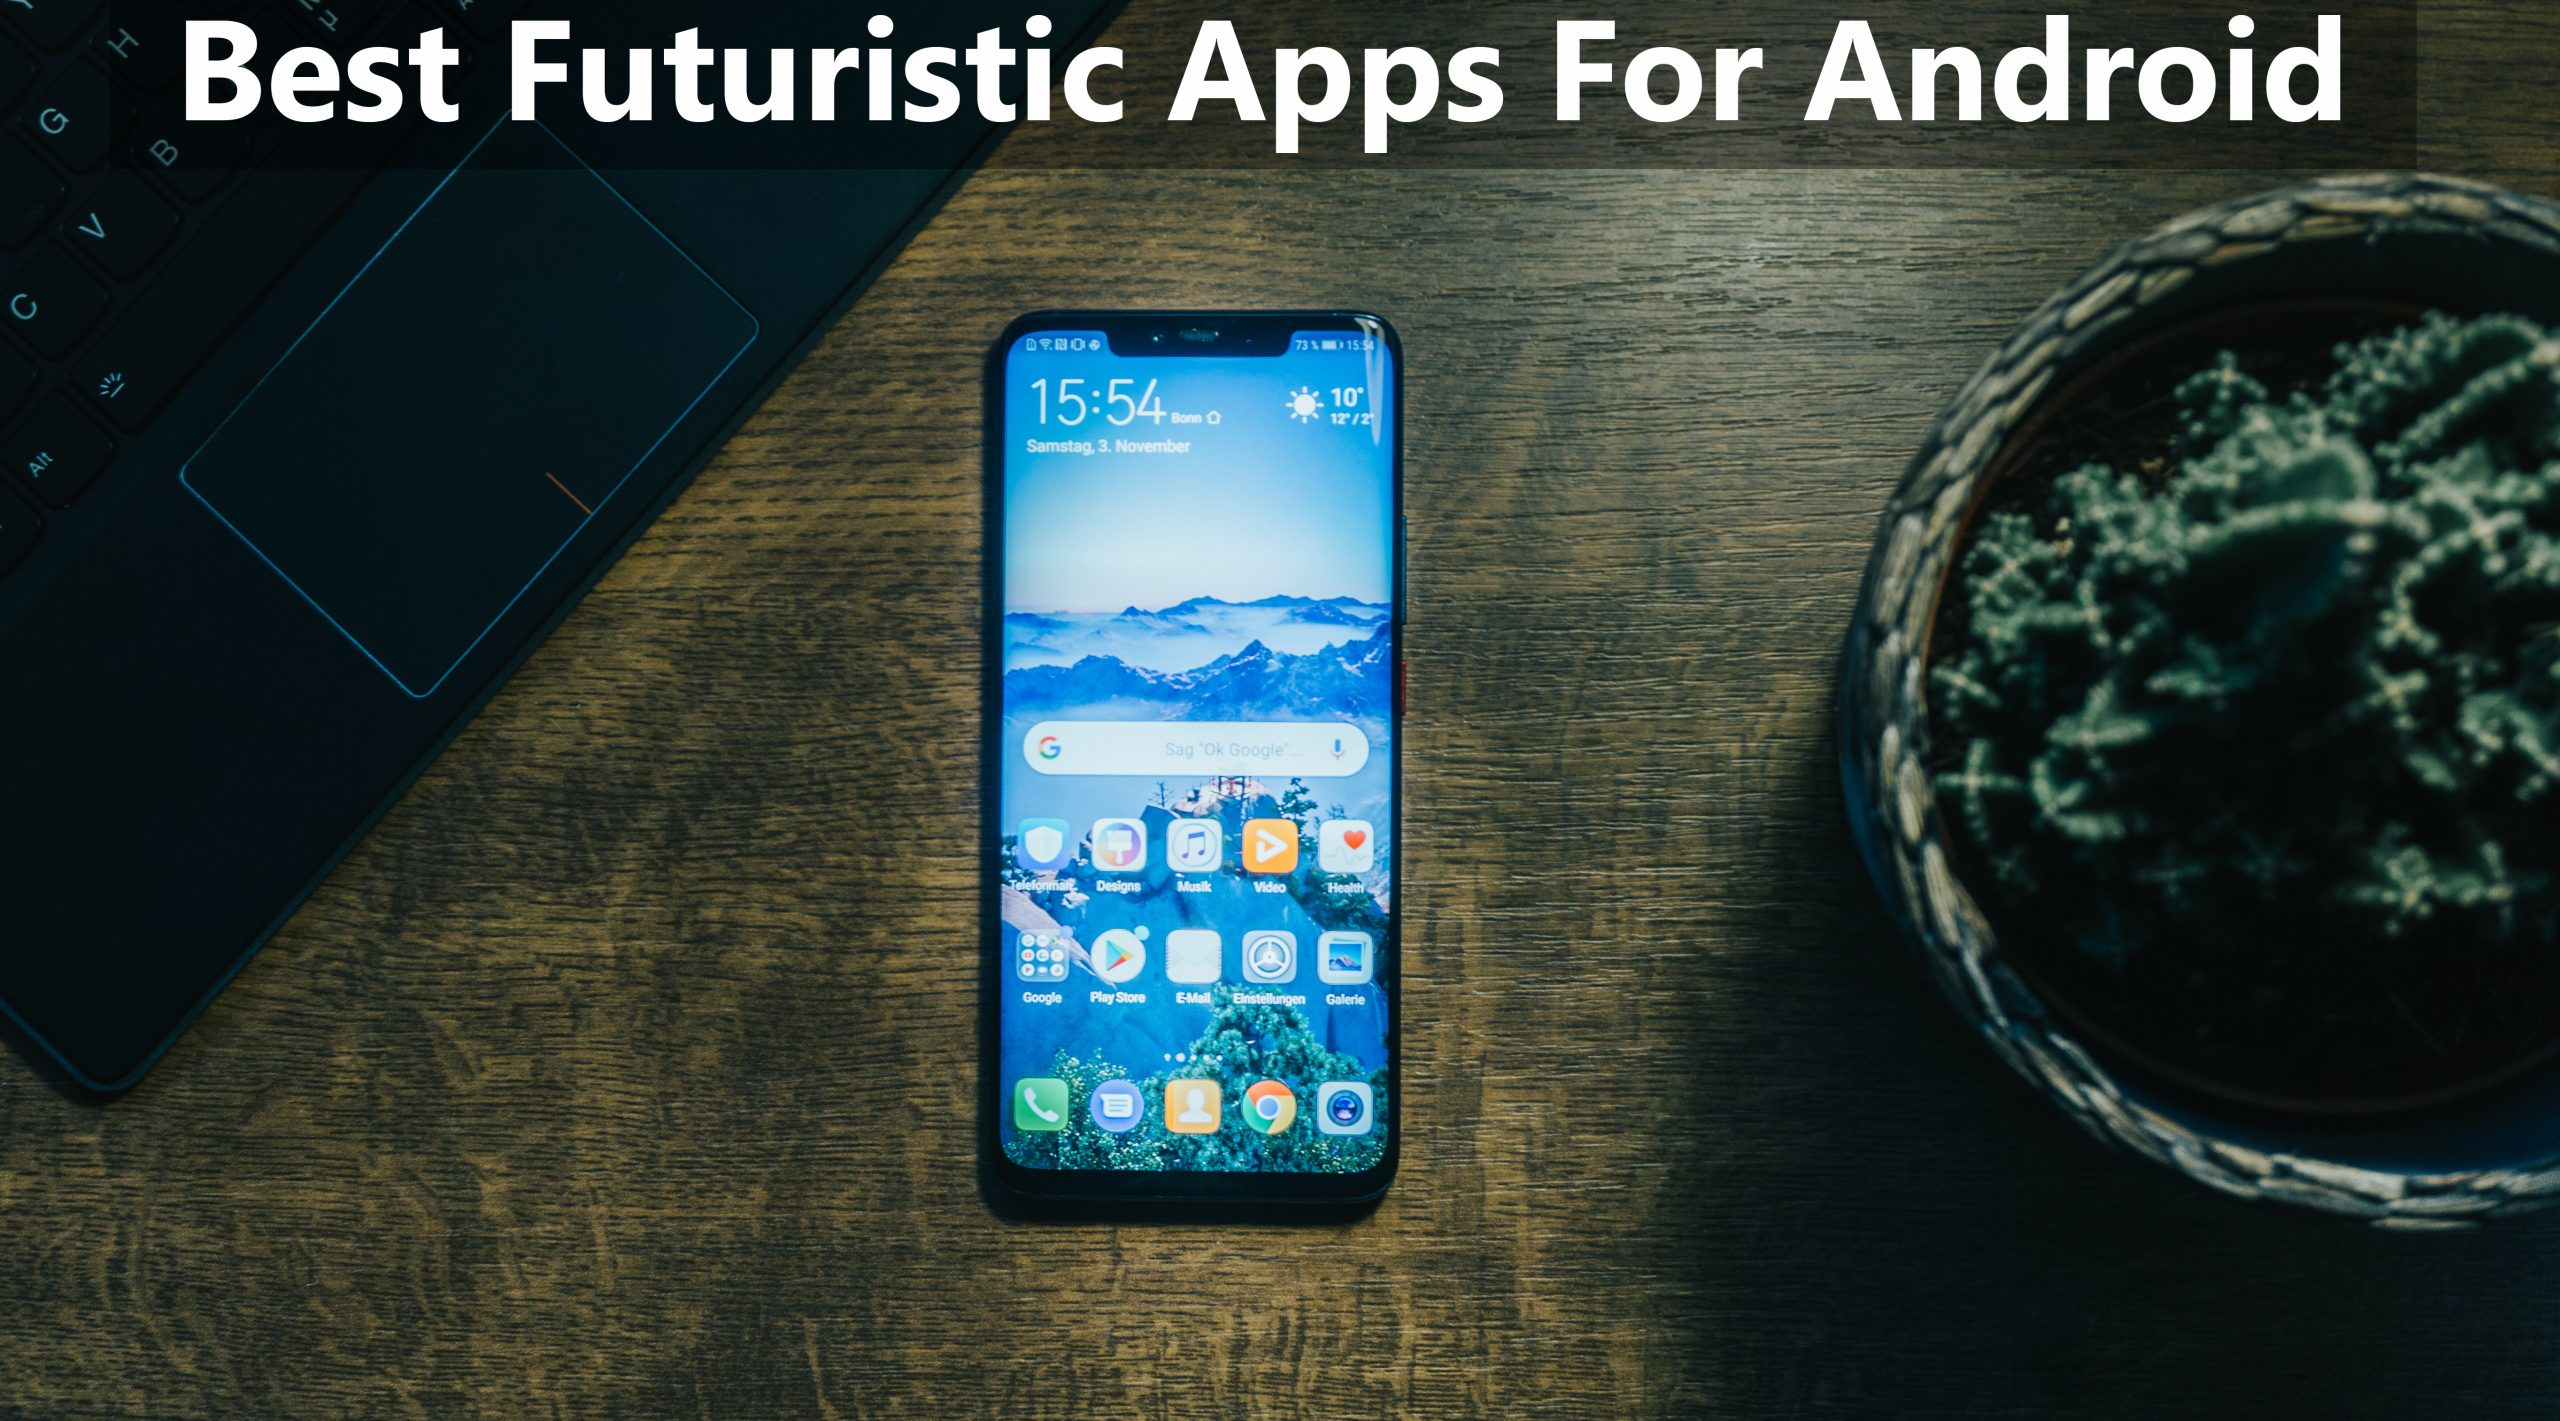 Best Futuristic Apps for Android 2021